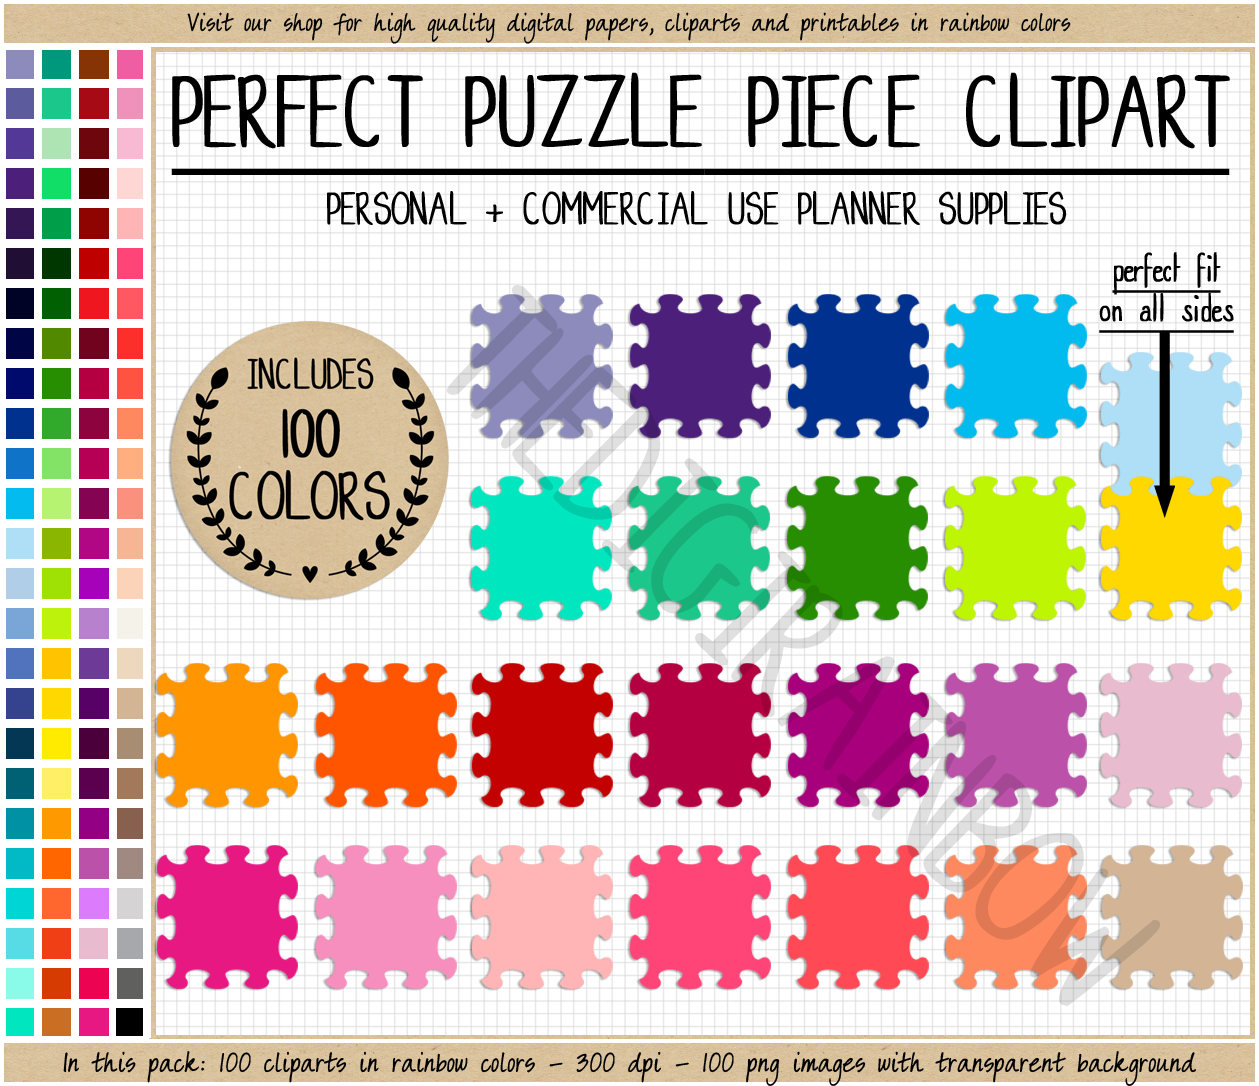 Sale 100 Puzzle Clipart Rainbow Puzzle Printable Sticker Board | Etsy - Printable Rainbow Puzzle